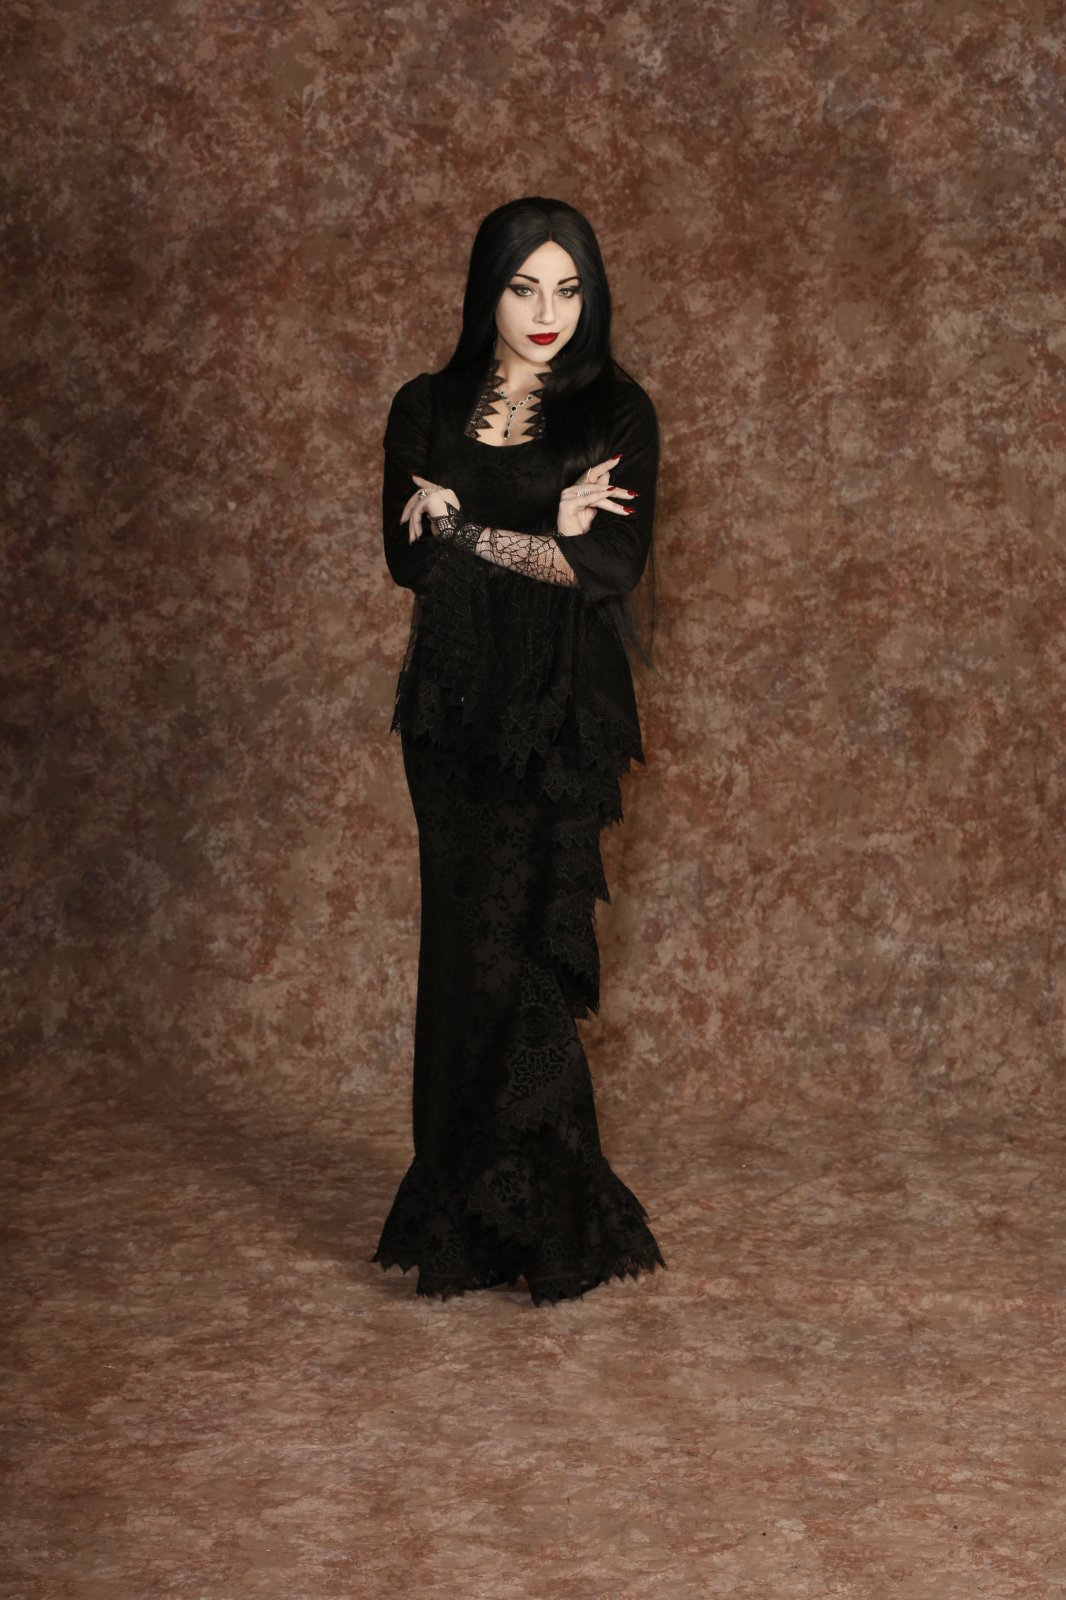 Addams Family - Morticia Black Dress